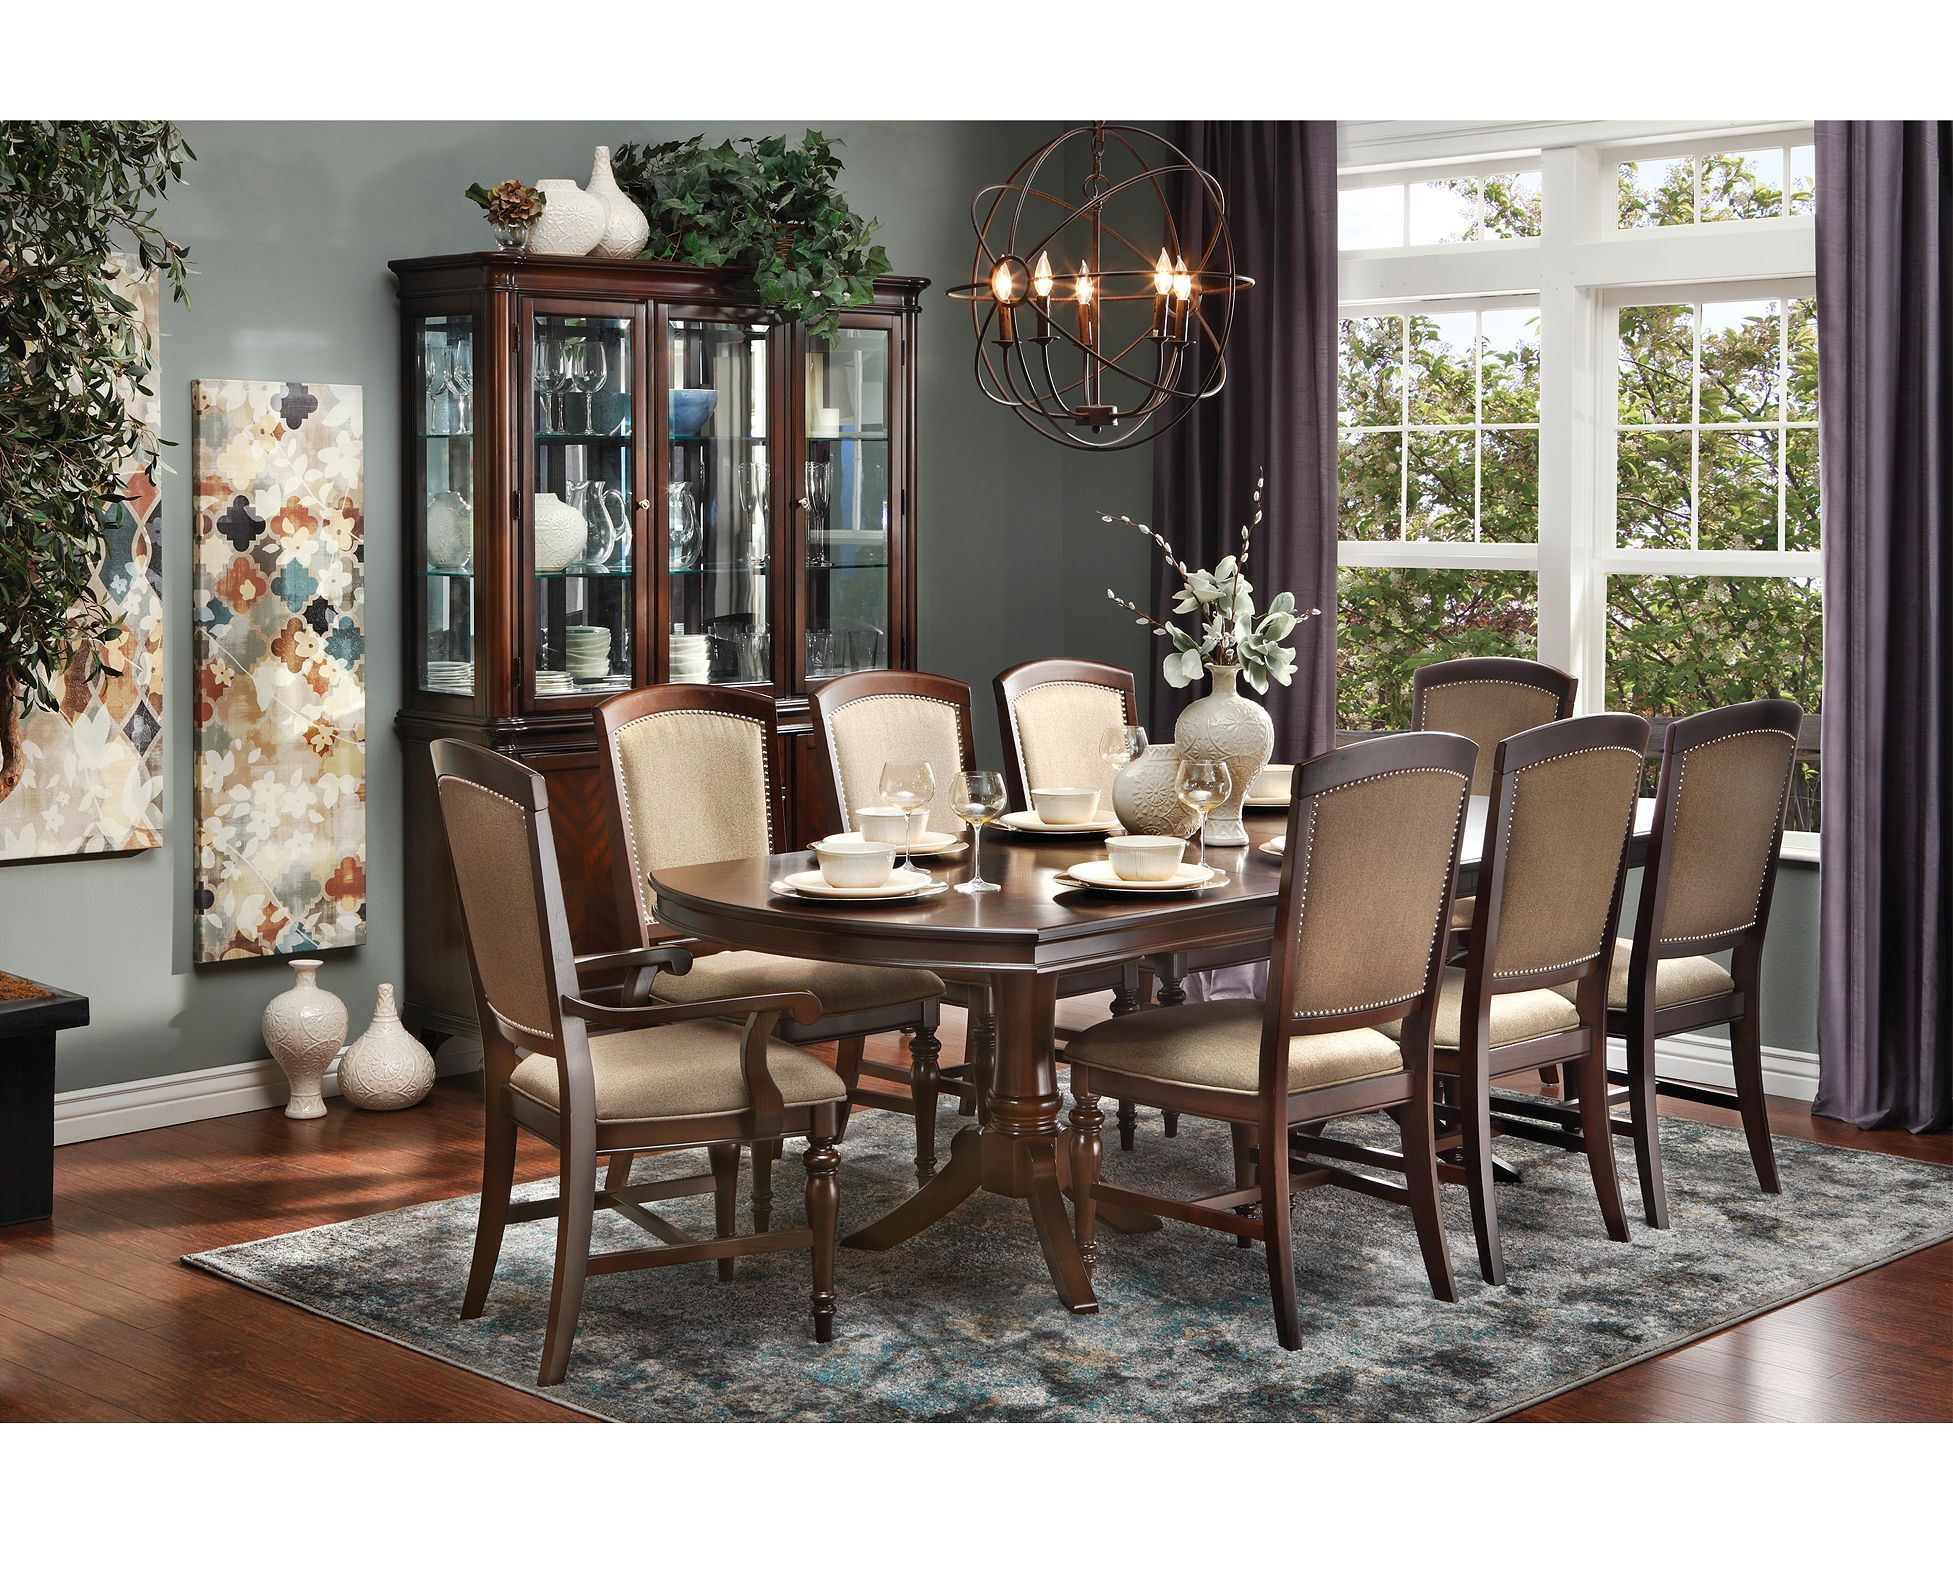 Double Pedestal Base For A Clic Look Rowland Dining Set Offers Timeless Sophistication Your Room Furniturerow Diningroomdecor